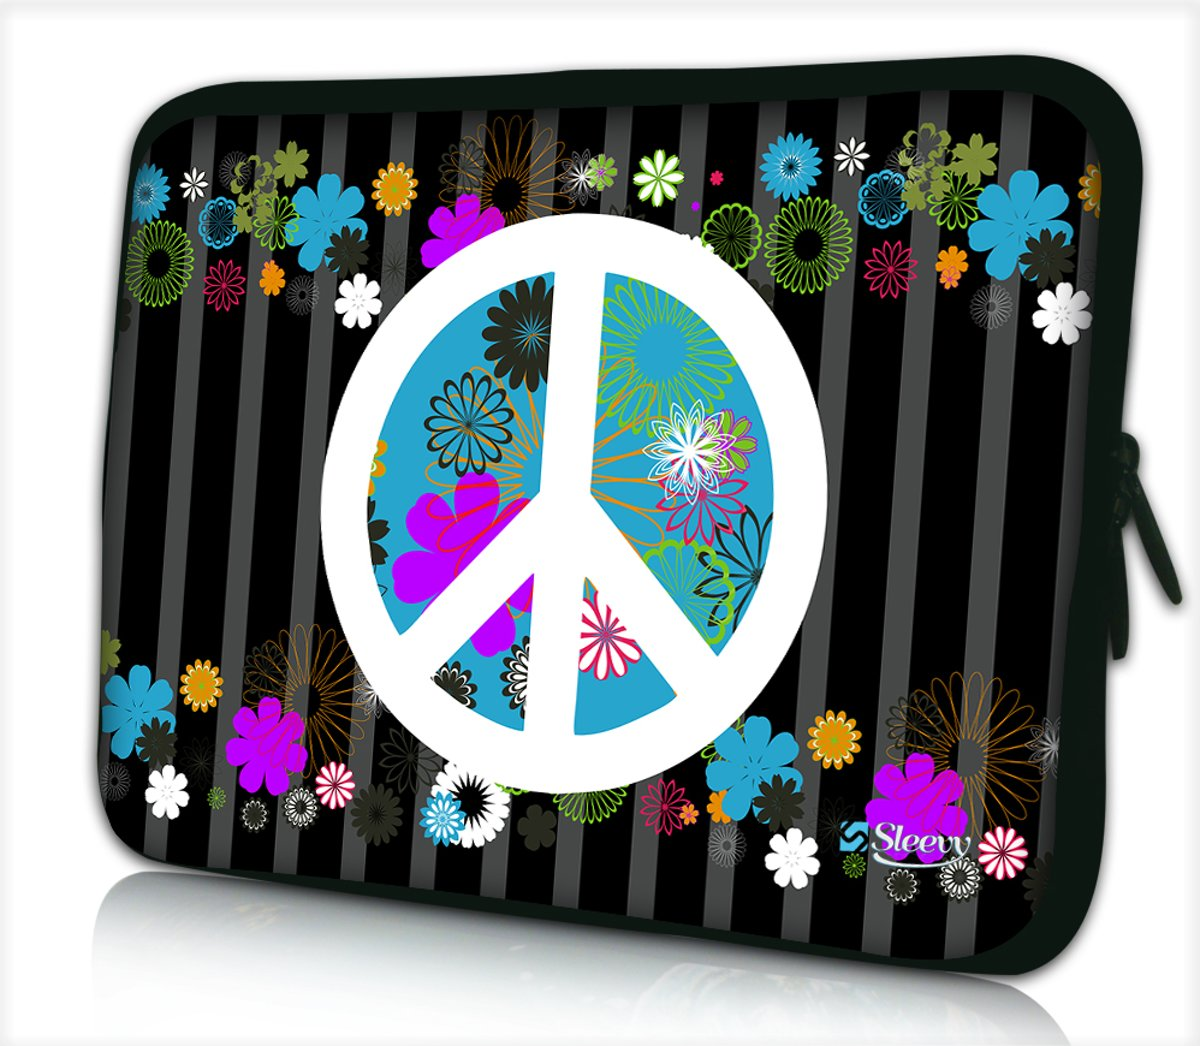 Tablet hoes / laptophoes 10,1 inch peace - Sleevy - Laptop sleeve - Macbook hoes - beschermhoes - tabletsleeve - tablet sleeve - ipad sleeve